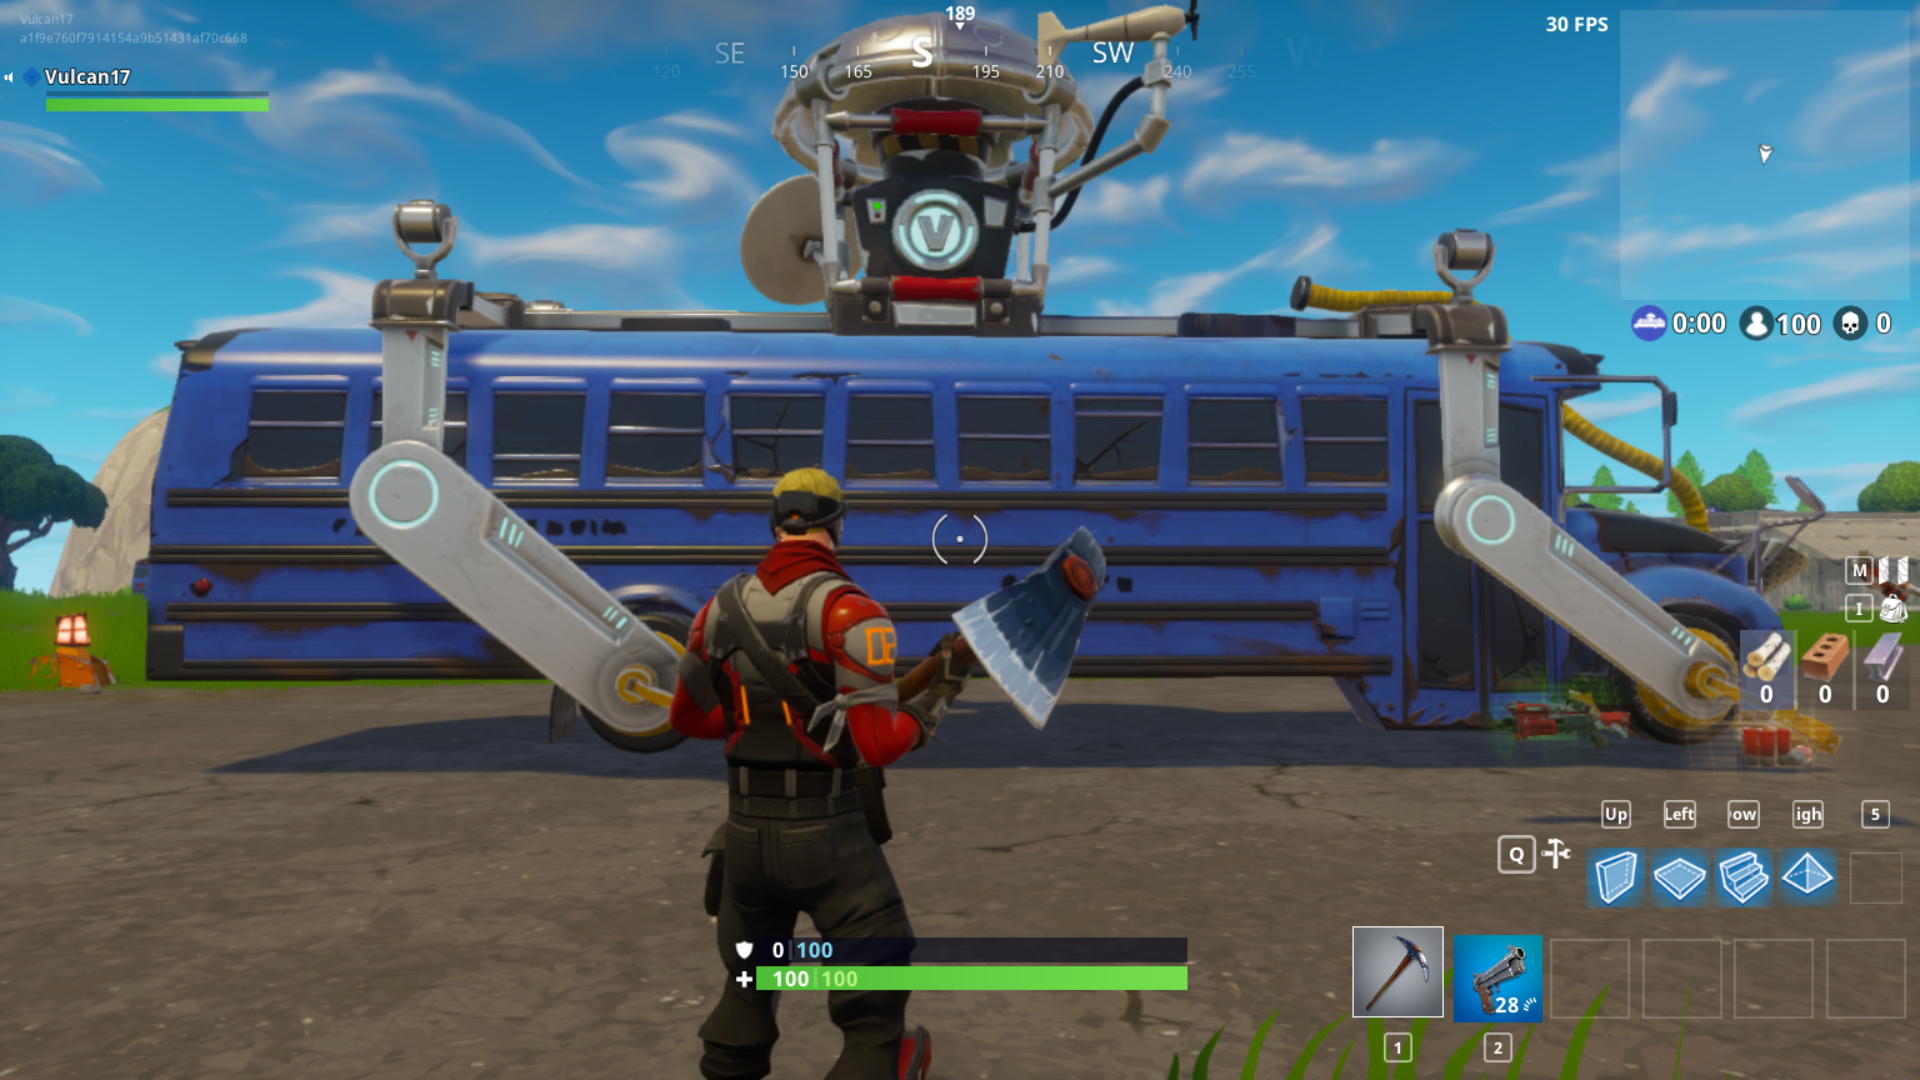 3d Printed Battle Bus Fortnite By Vulcan Industries Pinshape